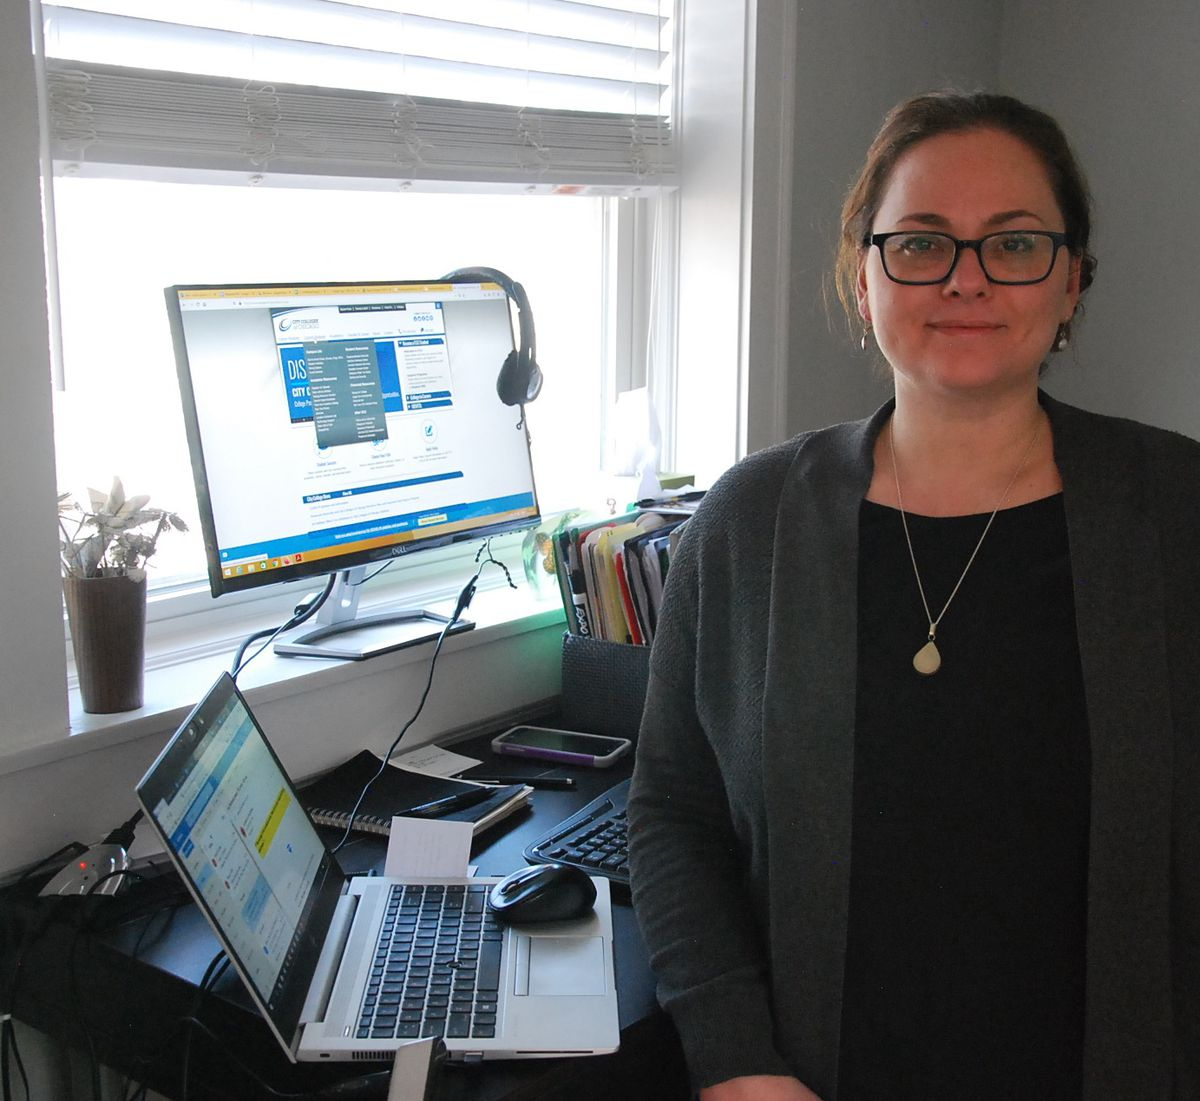 Kristin Bivens, an English instructor at Harold Washington College, at her home, where she is teaching remotely after a statewide order to close schools in March.